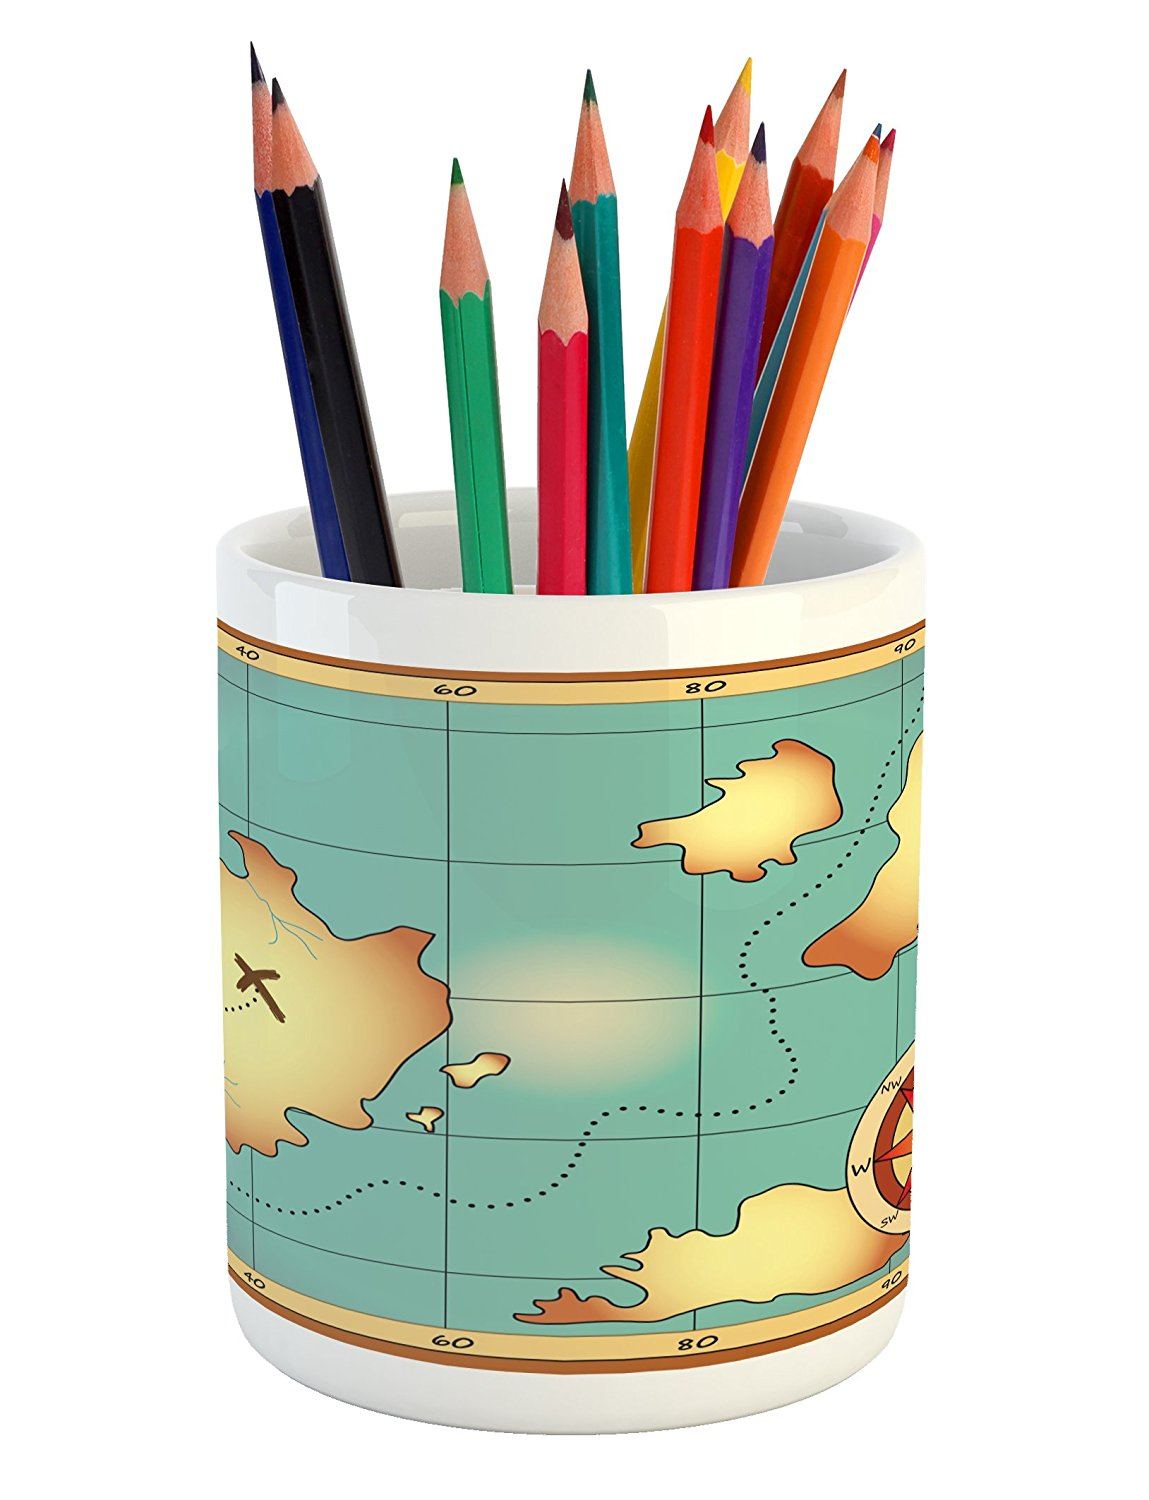 Island Map Pencil Pen Holder by Ambesonne, Ancient Treasure World Map Design with Compass Navigation Adventure Hidden Land, Printed Ceramic Pencil Pen Holder for Desk Office Accessory, Cream Blue